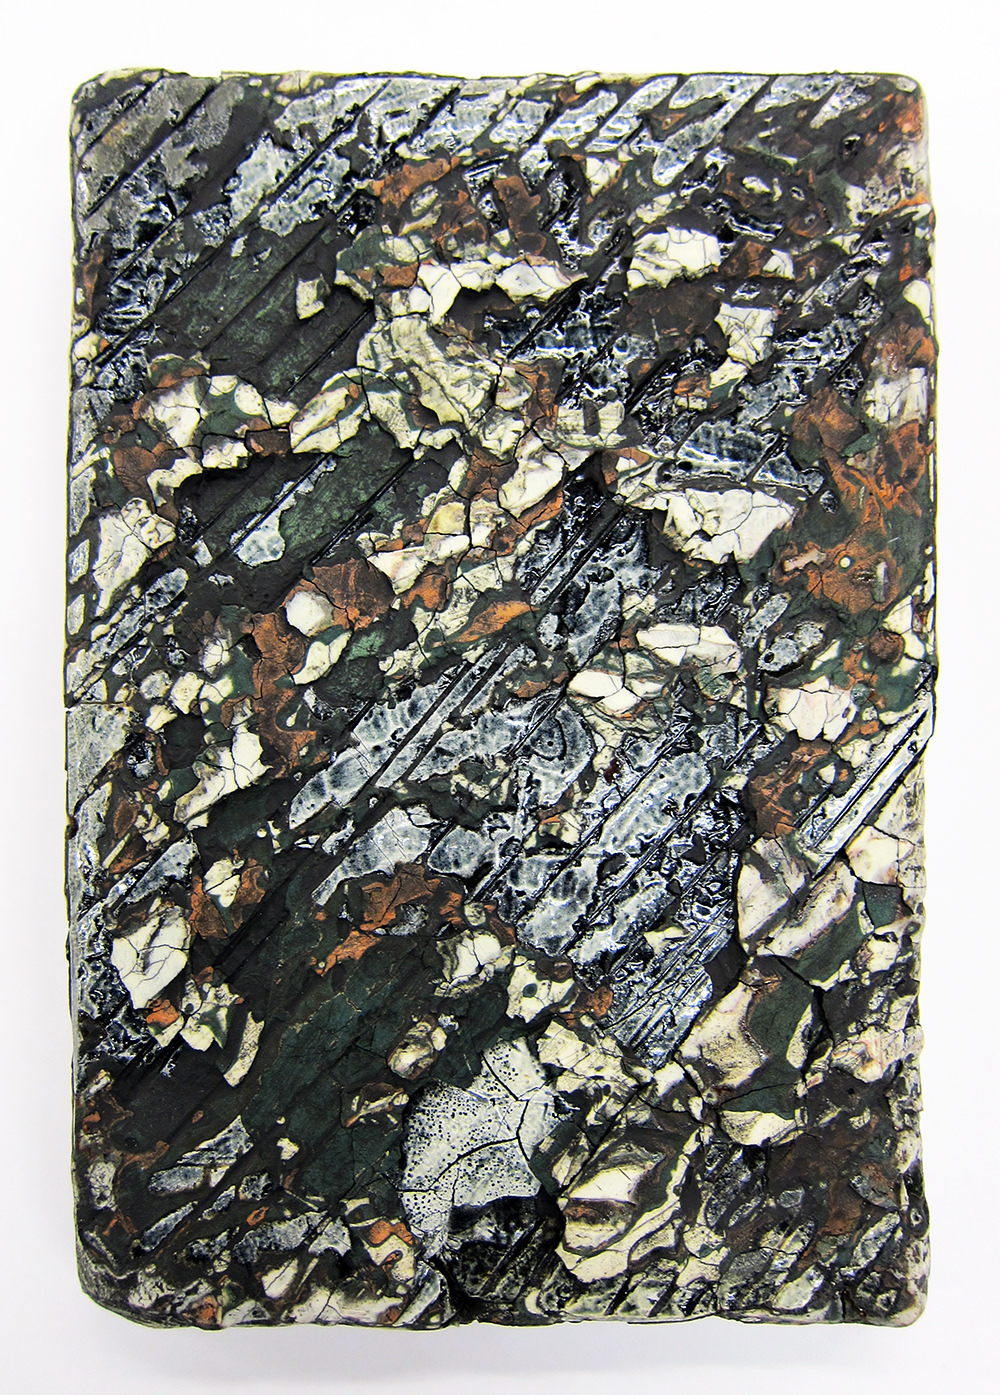 "<em>Small Traces Slab No.11</em> <span style=""color:#CC0000;font-size:1.5em;"">•</span>"